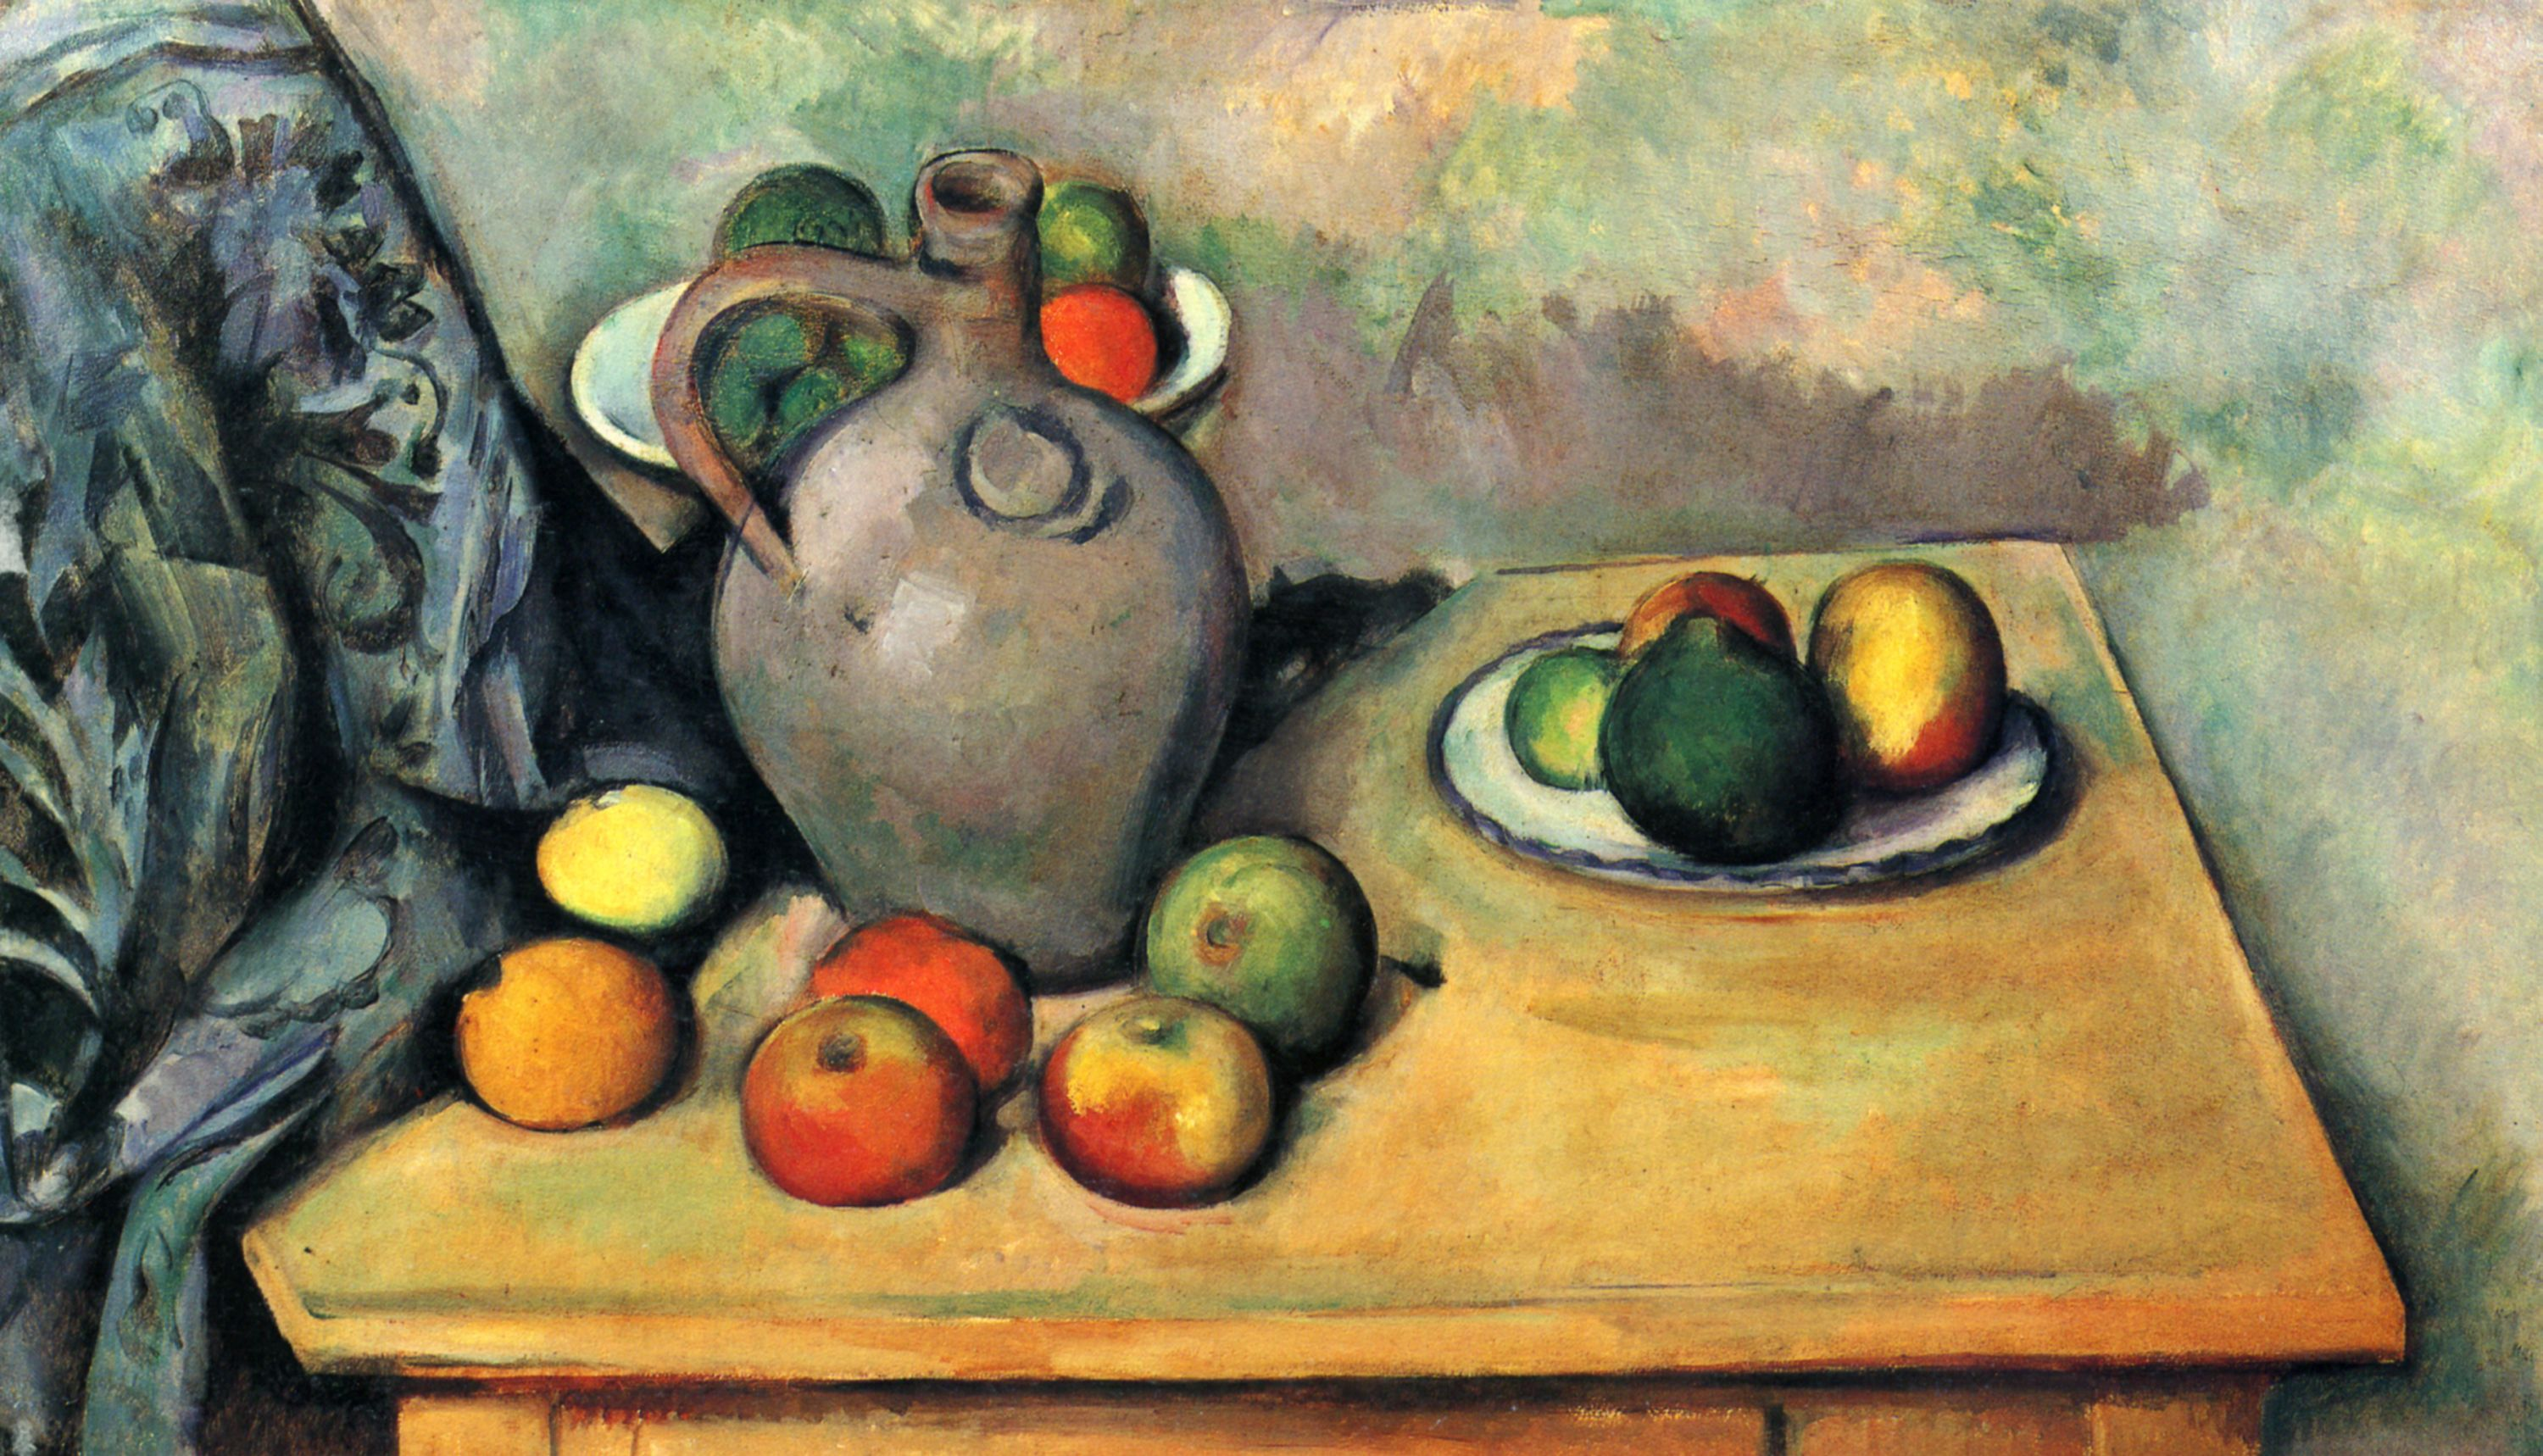 Paul Cezanne - Still Life with Jug and Fruit on a Table, 1893-94 - 3000x1718px